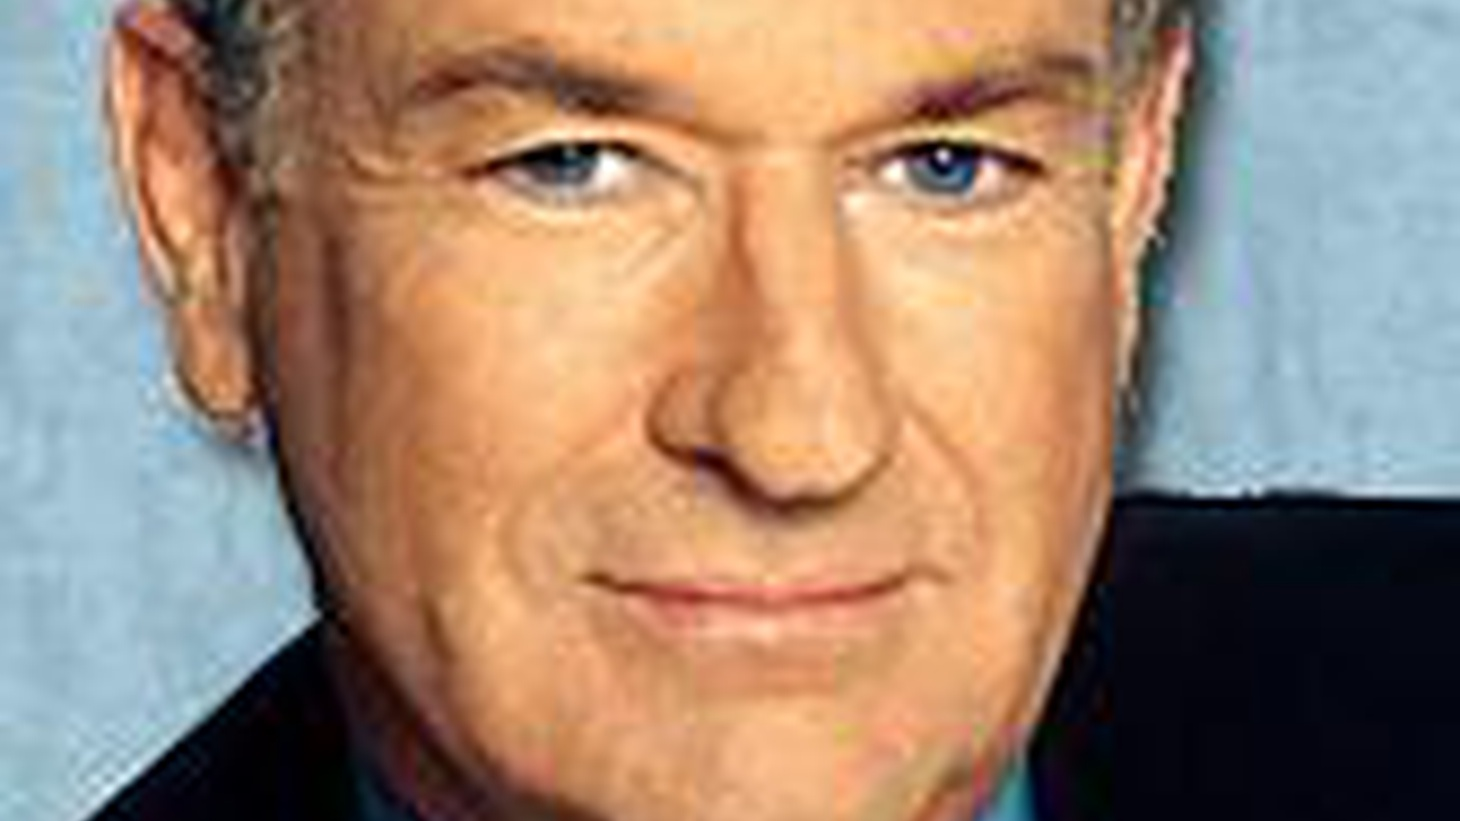 I don't usually pay attention to Bill O'Reilly and Rush Limbaugh, mostly because they deal in ideologically-driven opinions and don't fall under the standard definition of what a journalist is...